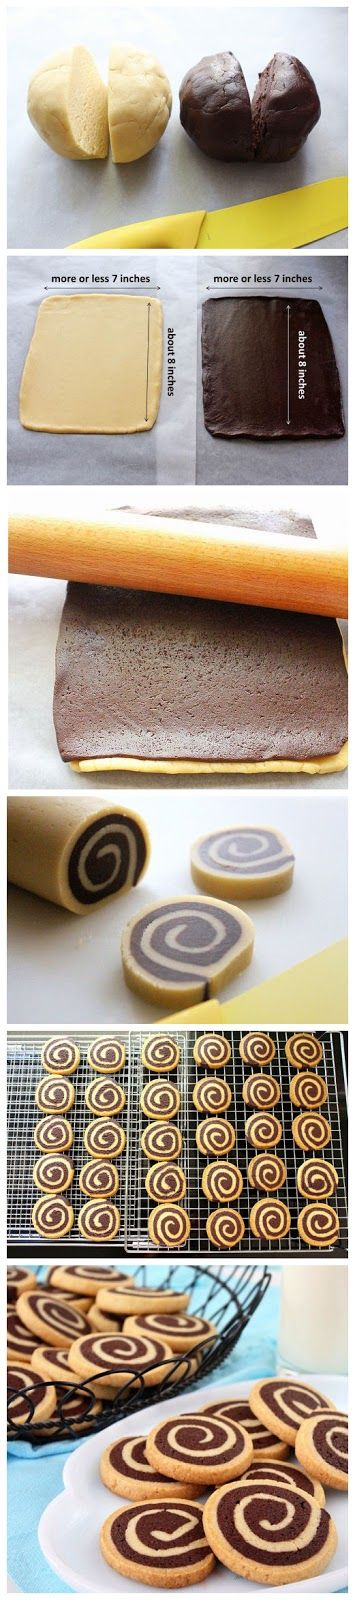 Basic Chocolate Pinwheel Cookies - surprisingly easy to make and so pretty!